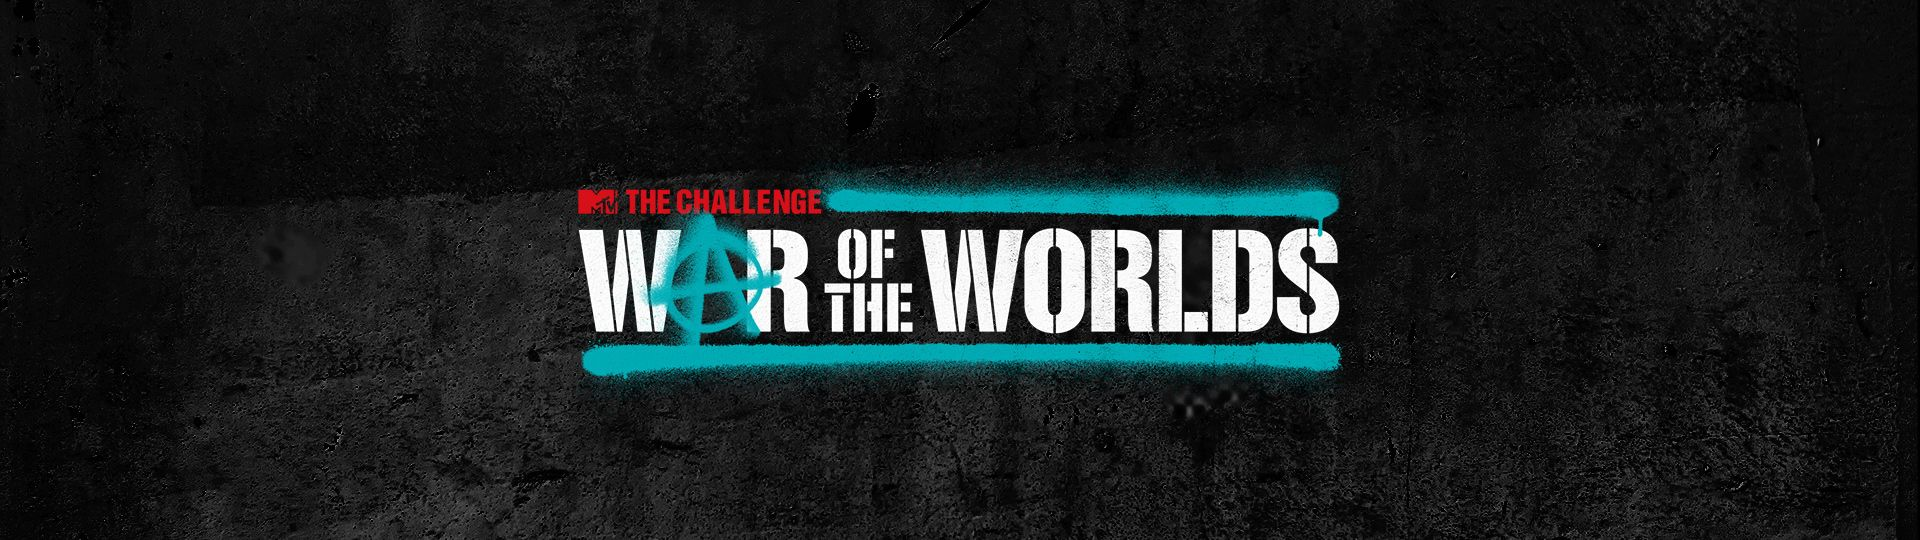 Image result for mtv the challenge